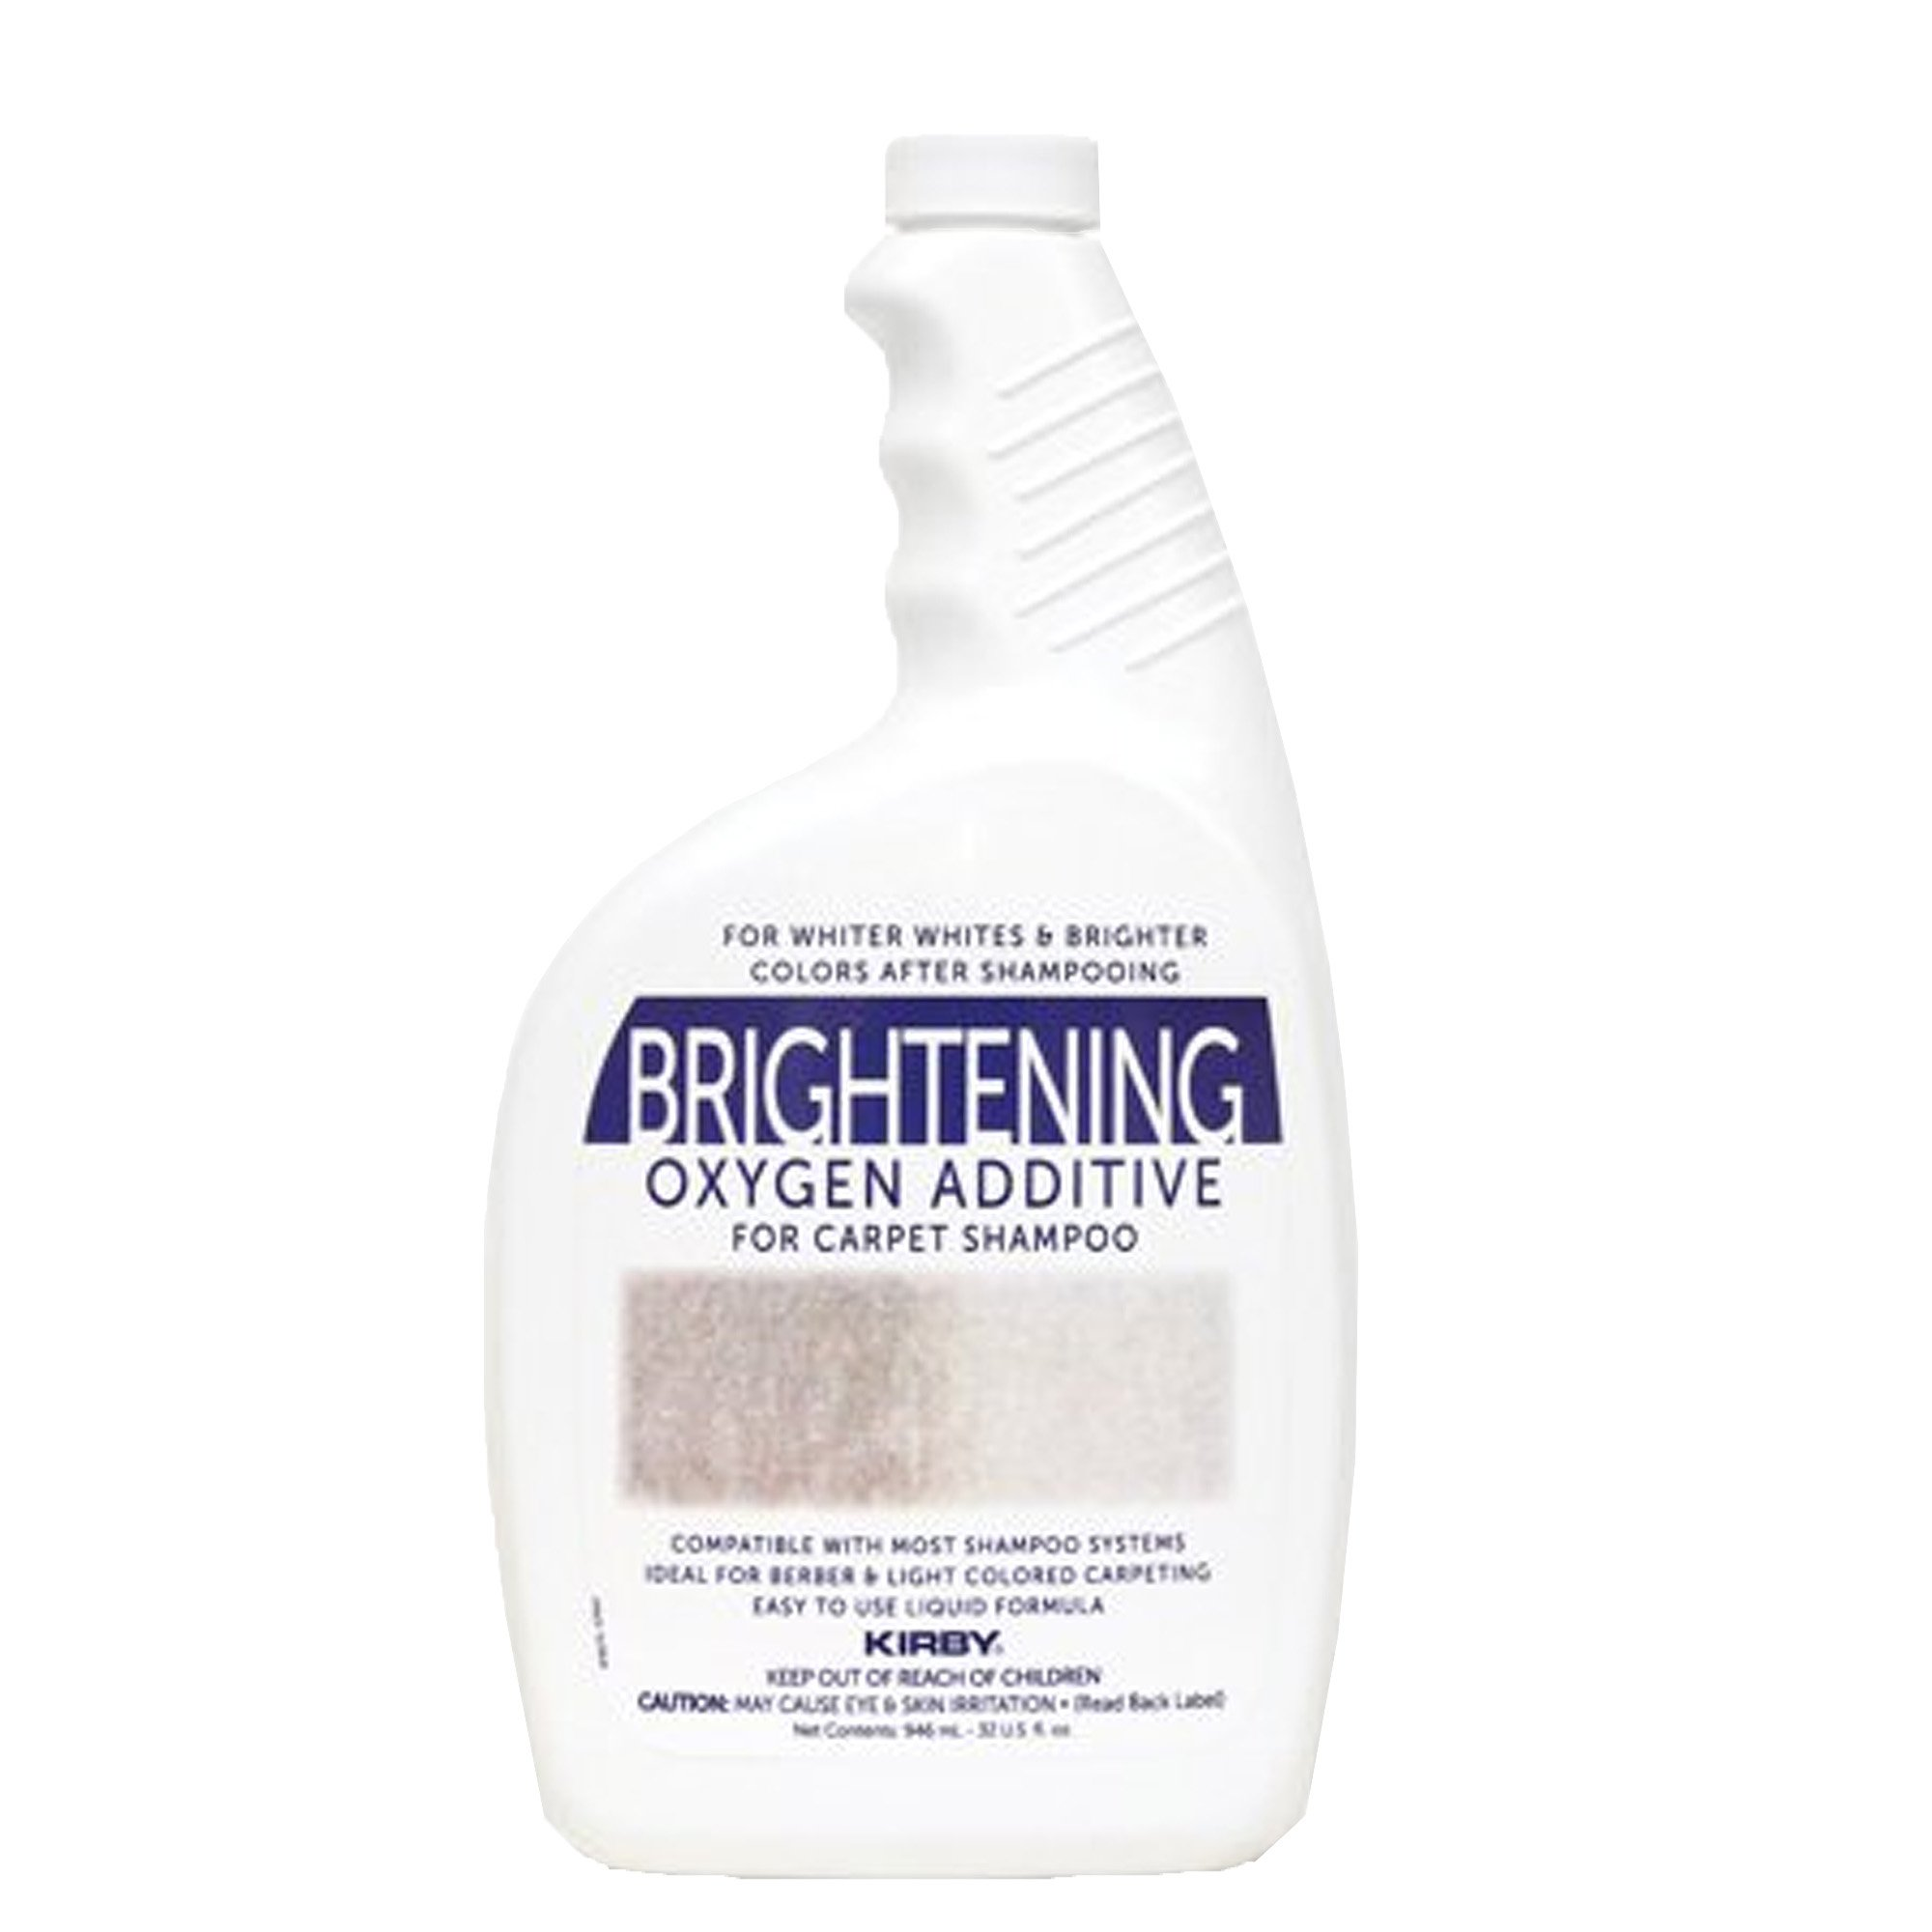 Genuine Kirby 32oz. Brightening Oxygen Additive for carpet shampoo (1 bottle) by Kirby